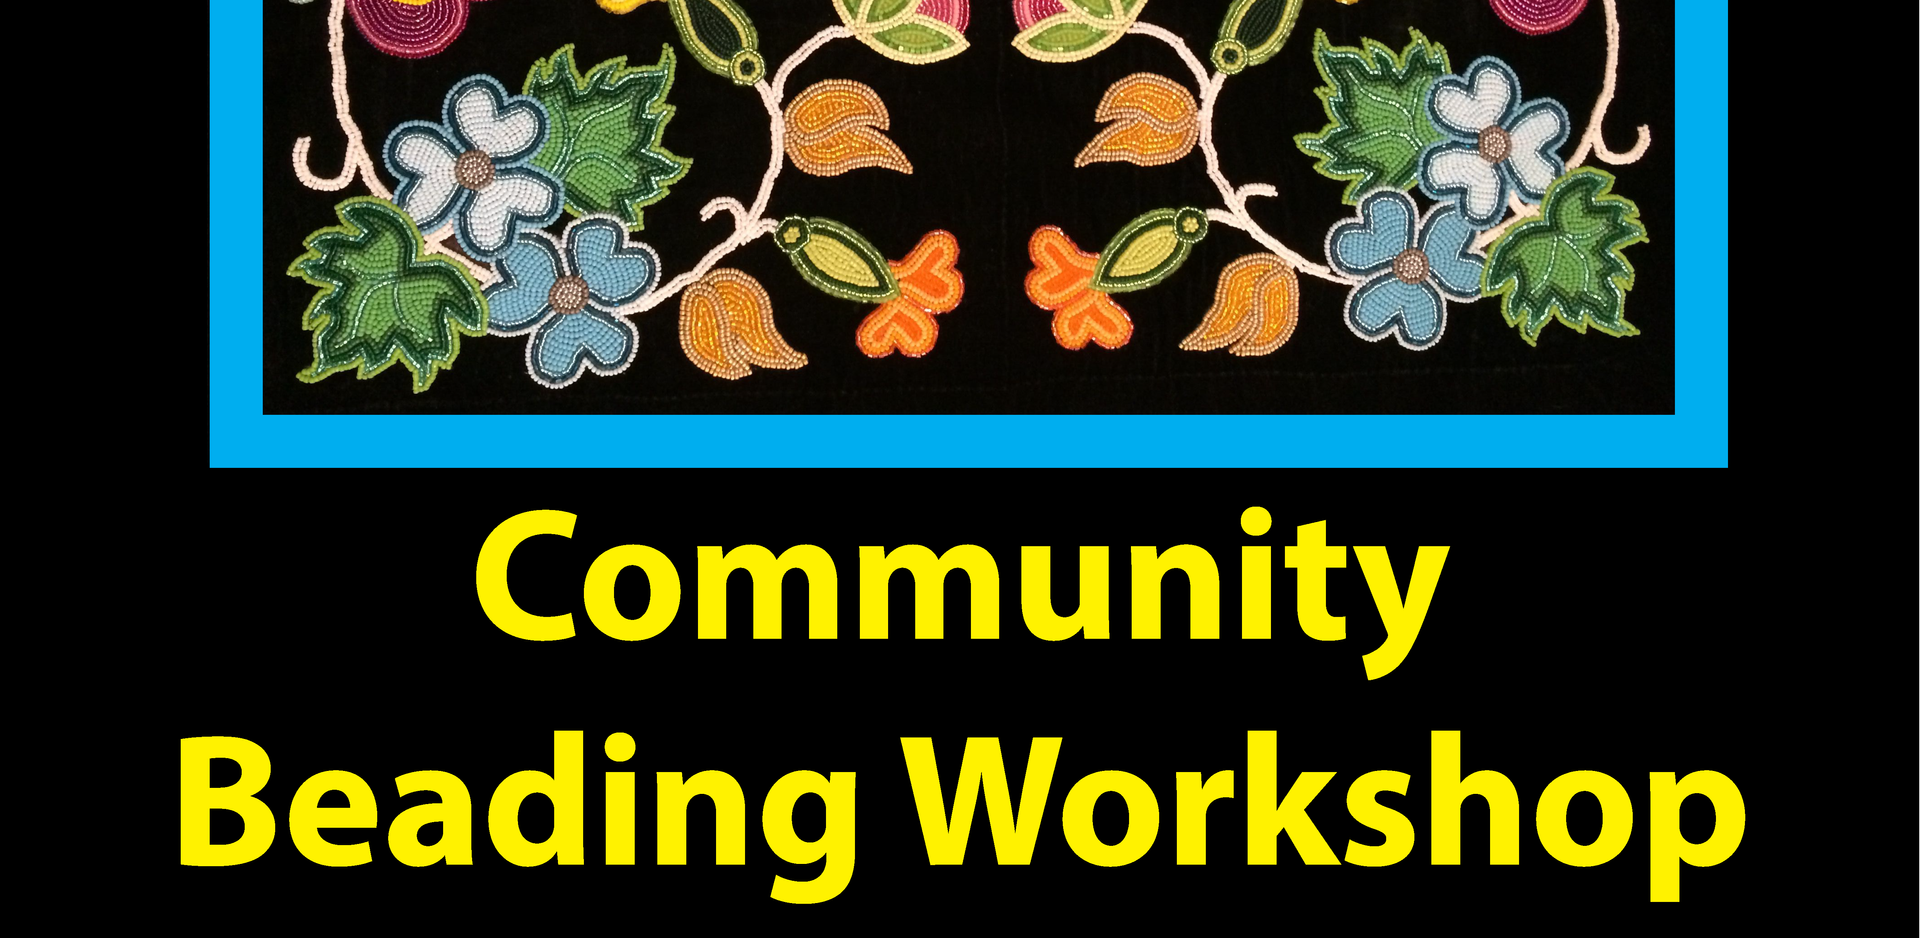 Community Beading Workshop.png